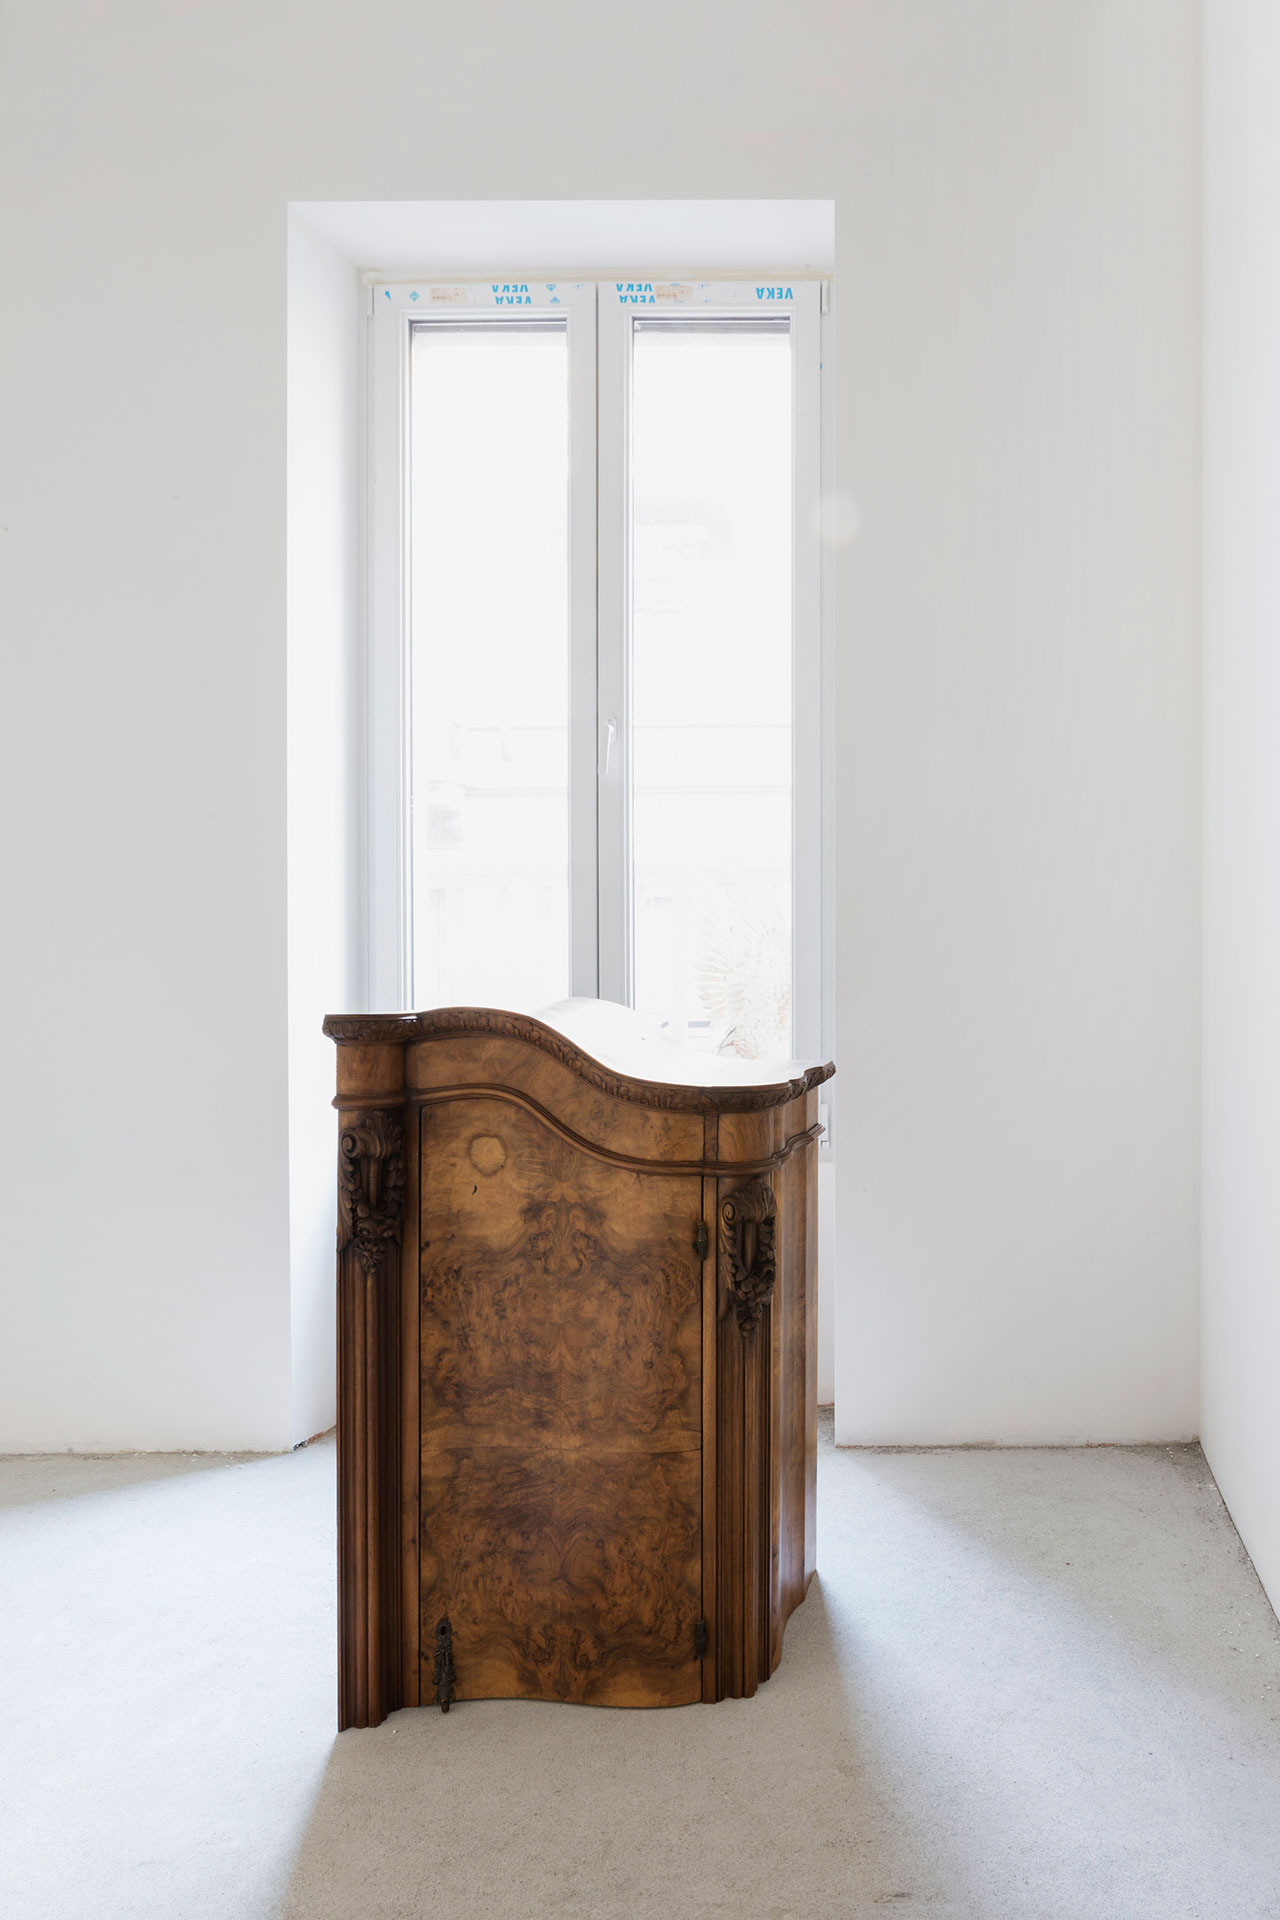 "Nucleo (Piergiorgio Robino + Marzia Ricci), ""Boolean"" Not (Cabinet), 2017. Concrete, vintage furniture, 61 x 67,5 x 108h cm. Unique piece in an edition 1+1. Photo by Studio Pepe Fotografia."